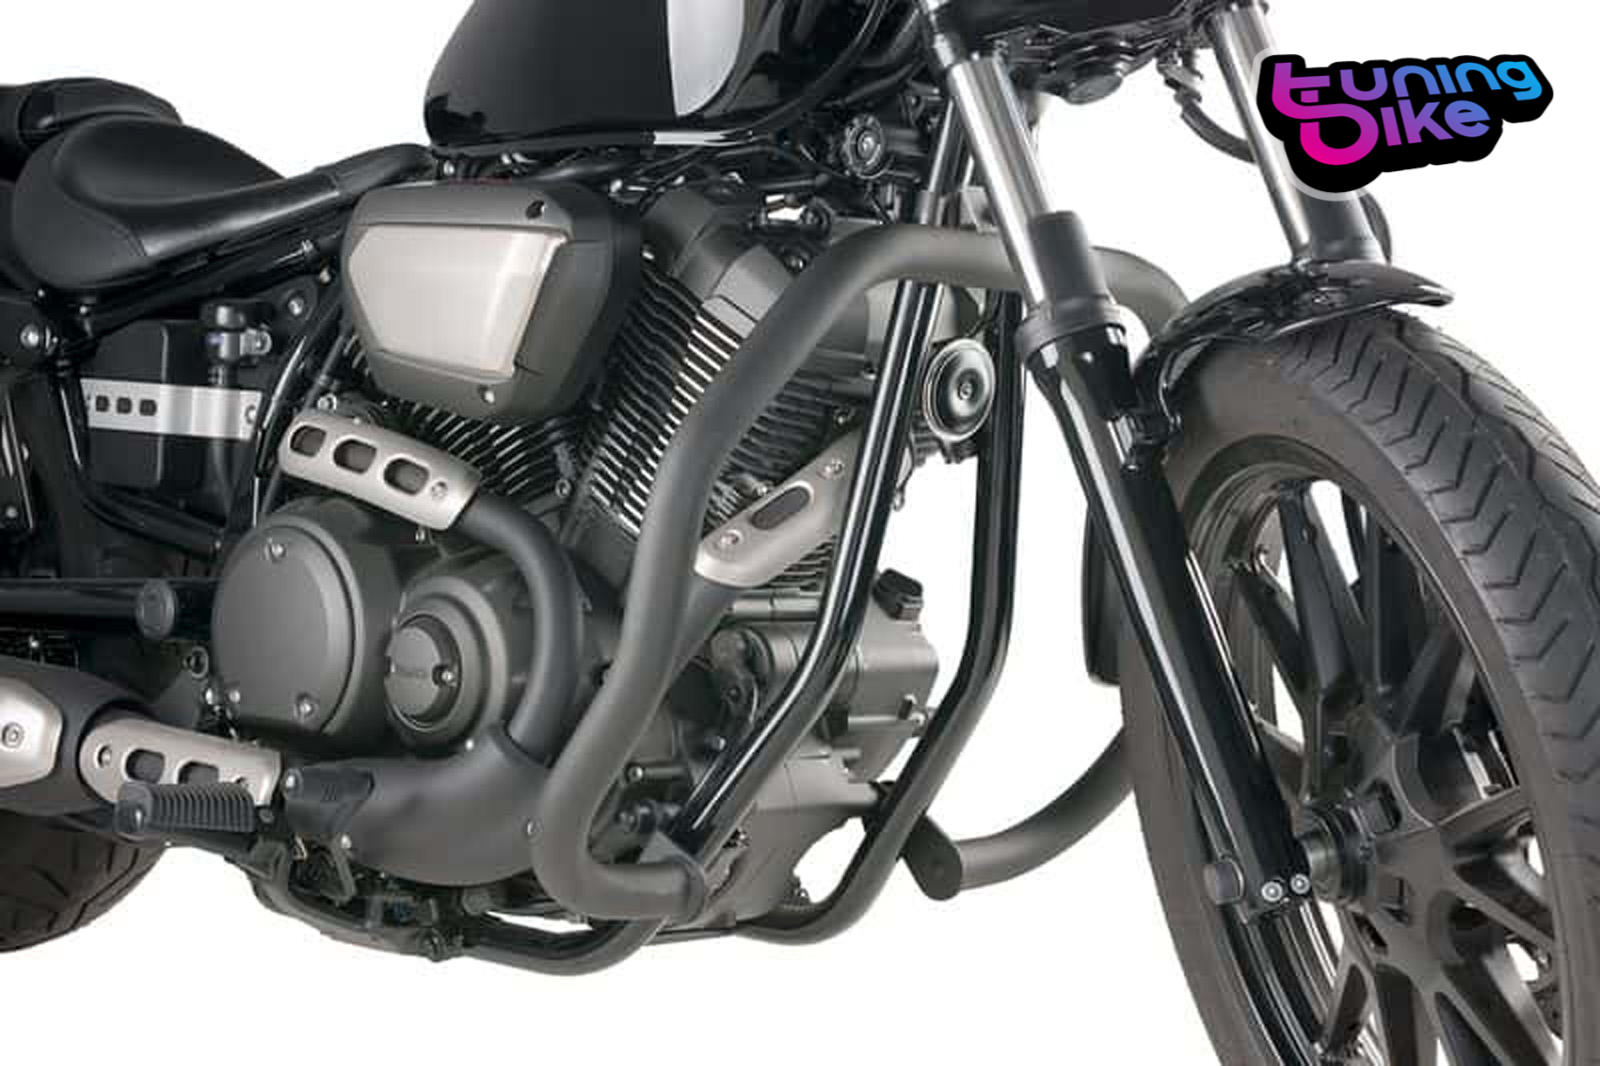 engine guards custom acces yamaha xv950 racer 16 39 17. Black Bedroom Furniture Sets. Home Design Ideas